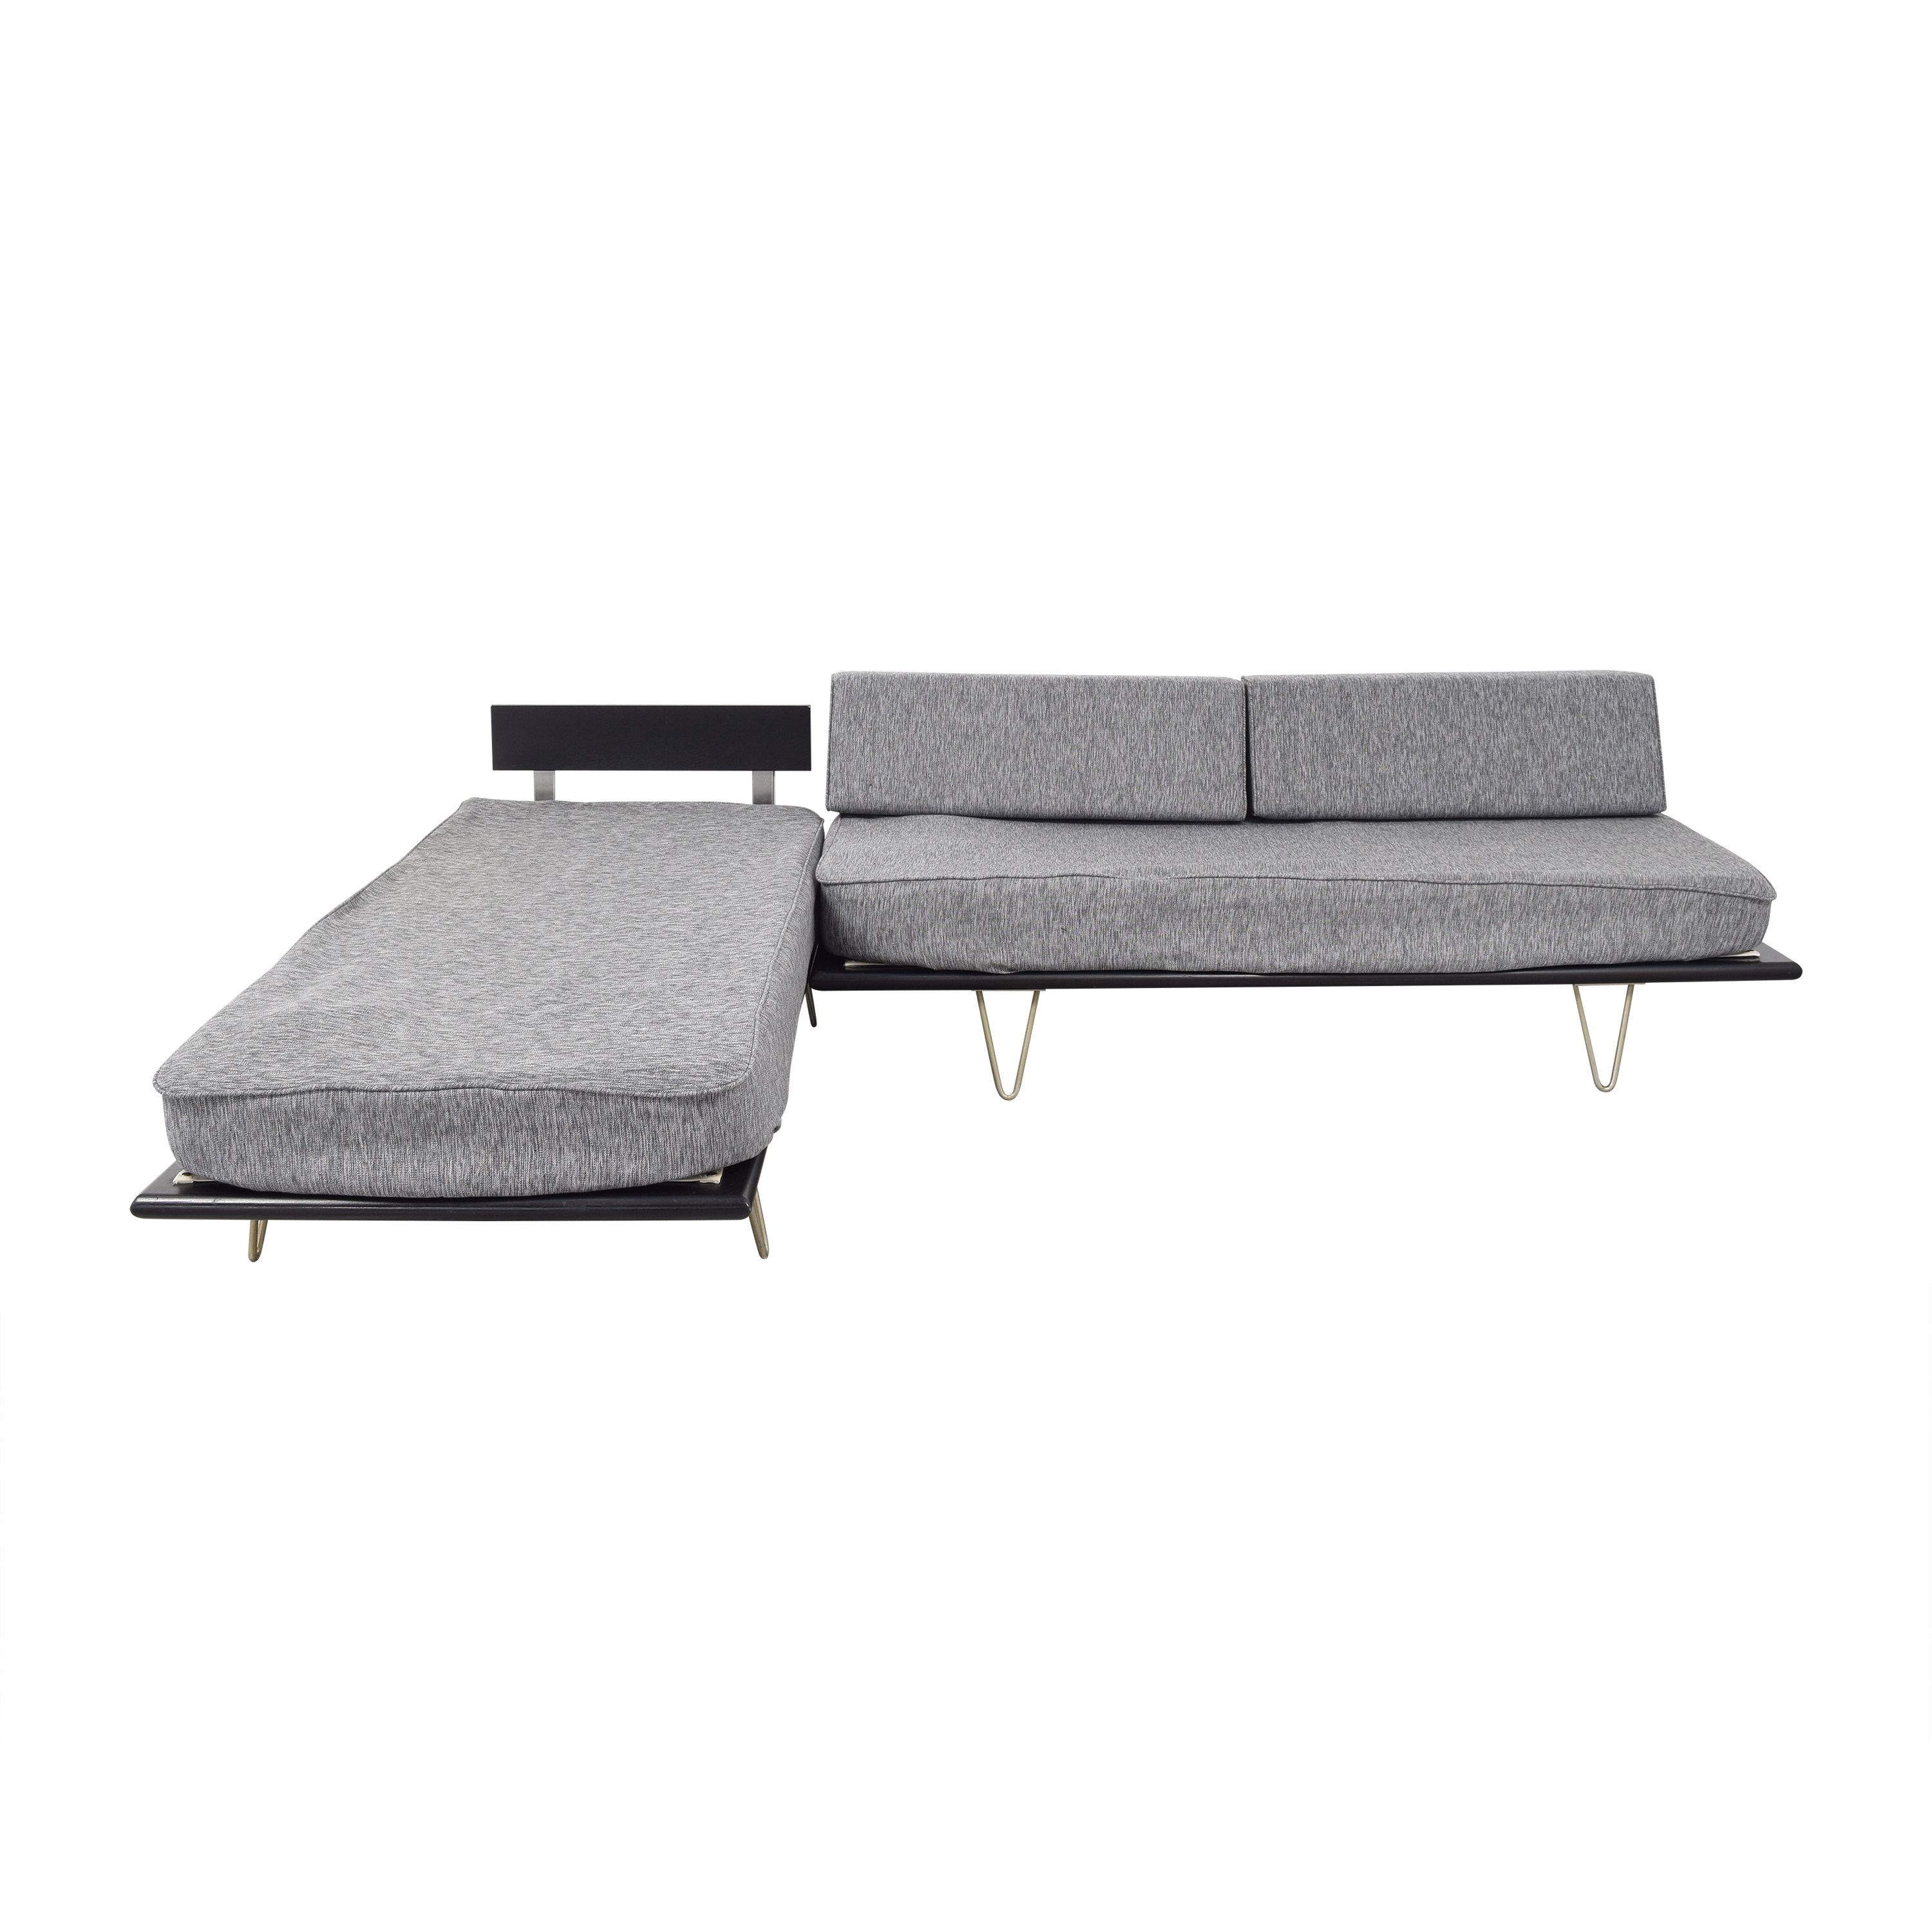 Modernica Modernica Case Study Sectional Daybed Sofa for sale